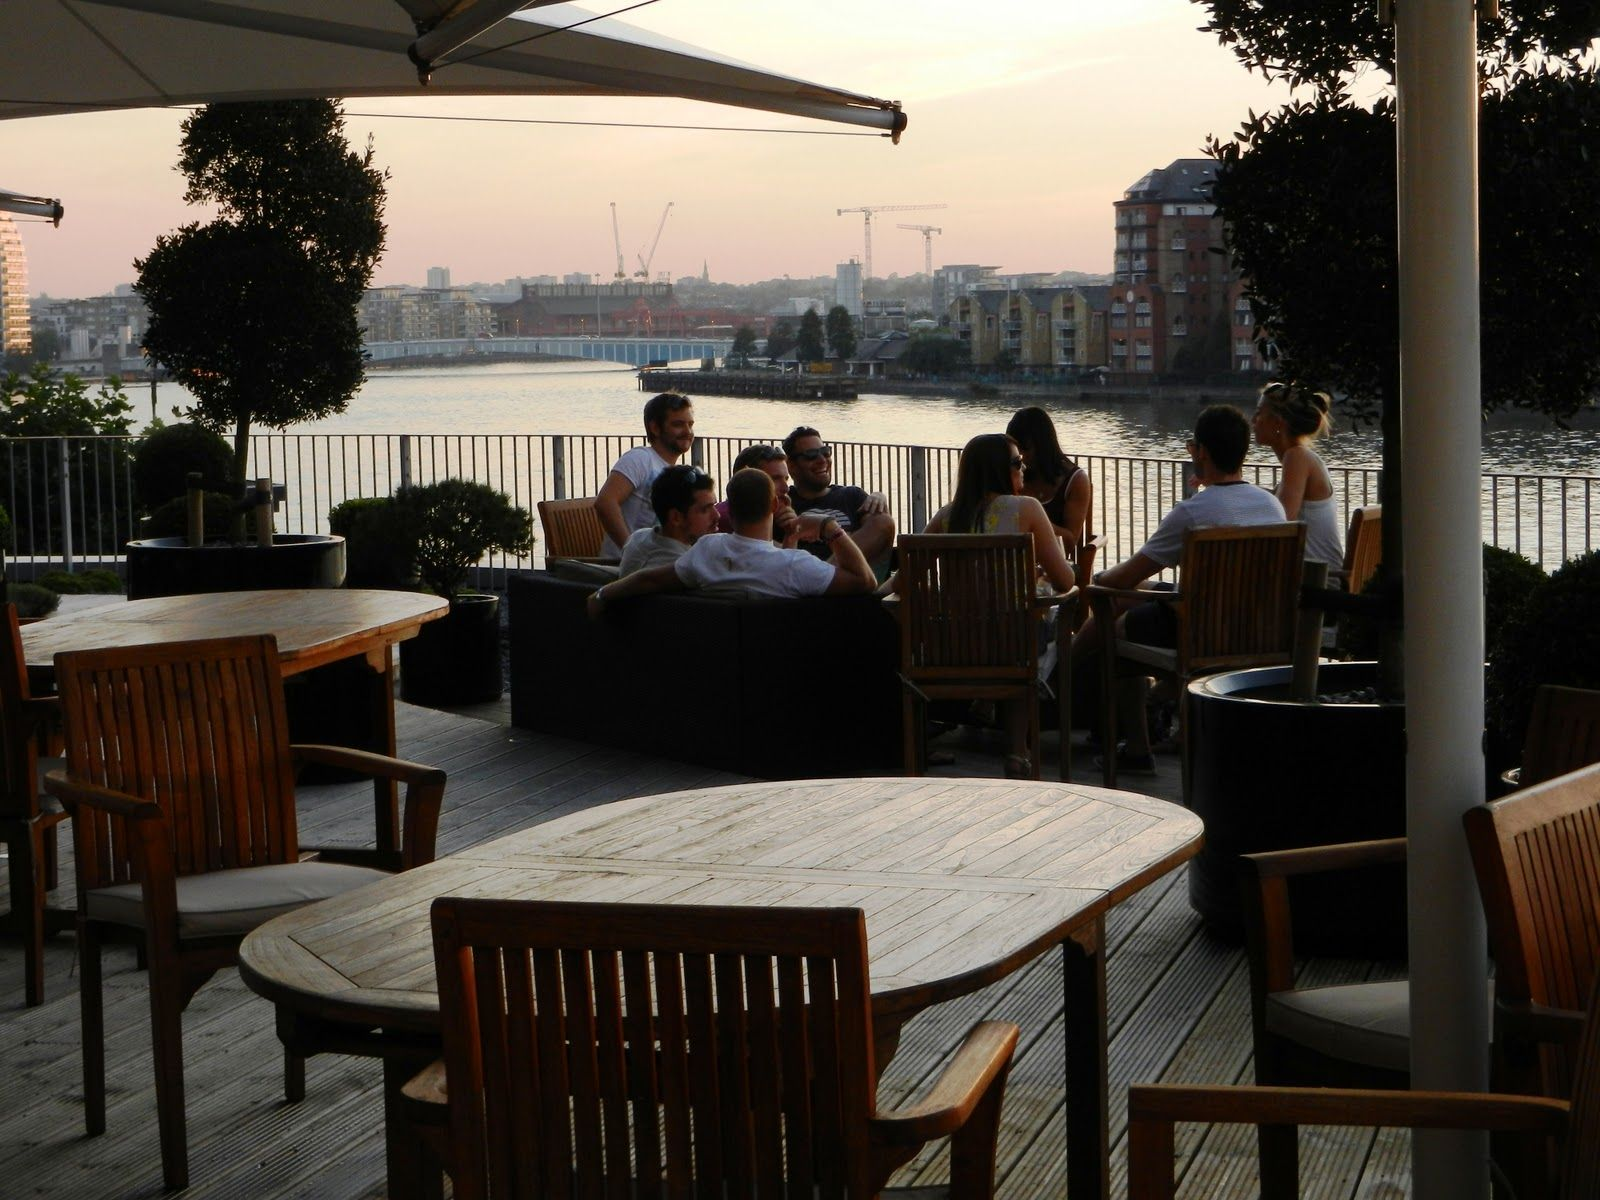 Banyan Restaurant - Ideally situated by the river, Banyan ...